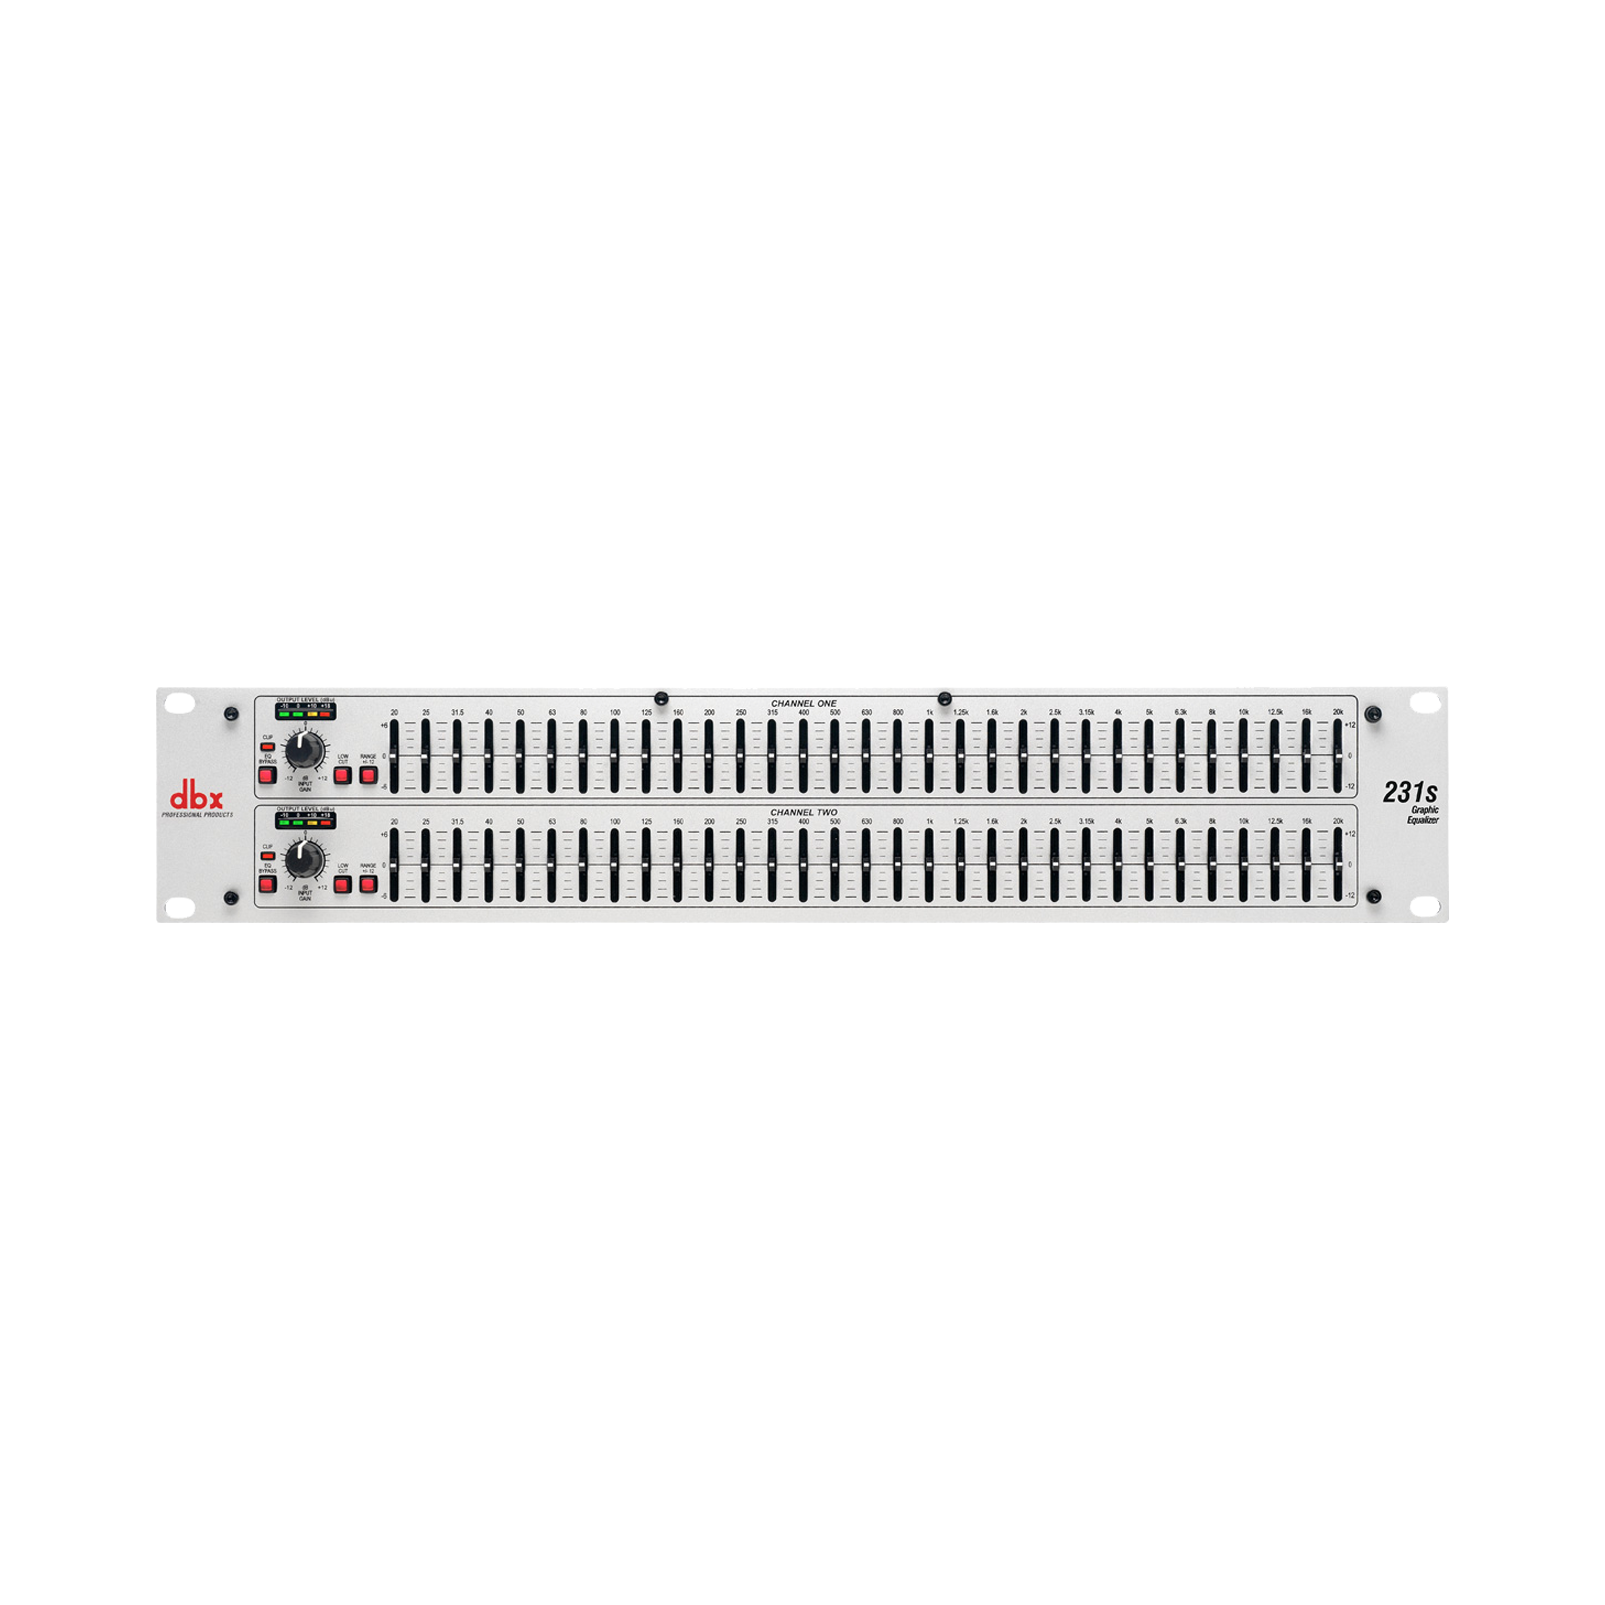 231s - White - Dual channel 31-band equalizer - Hero